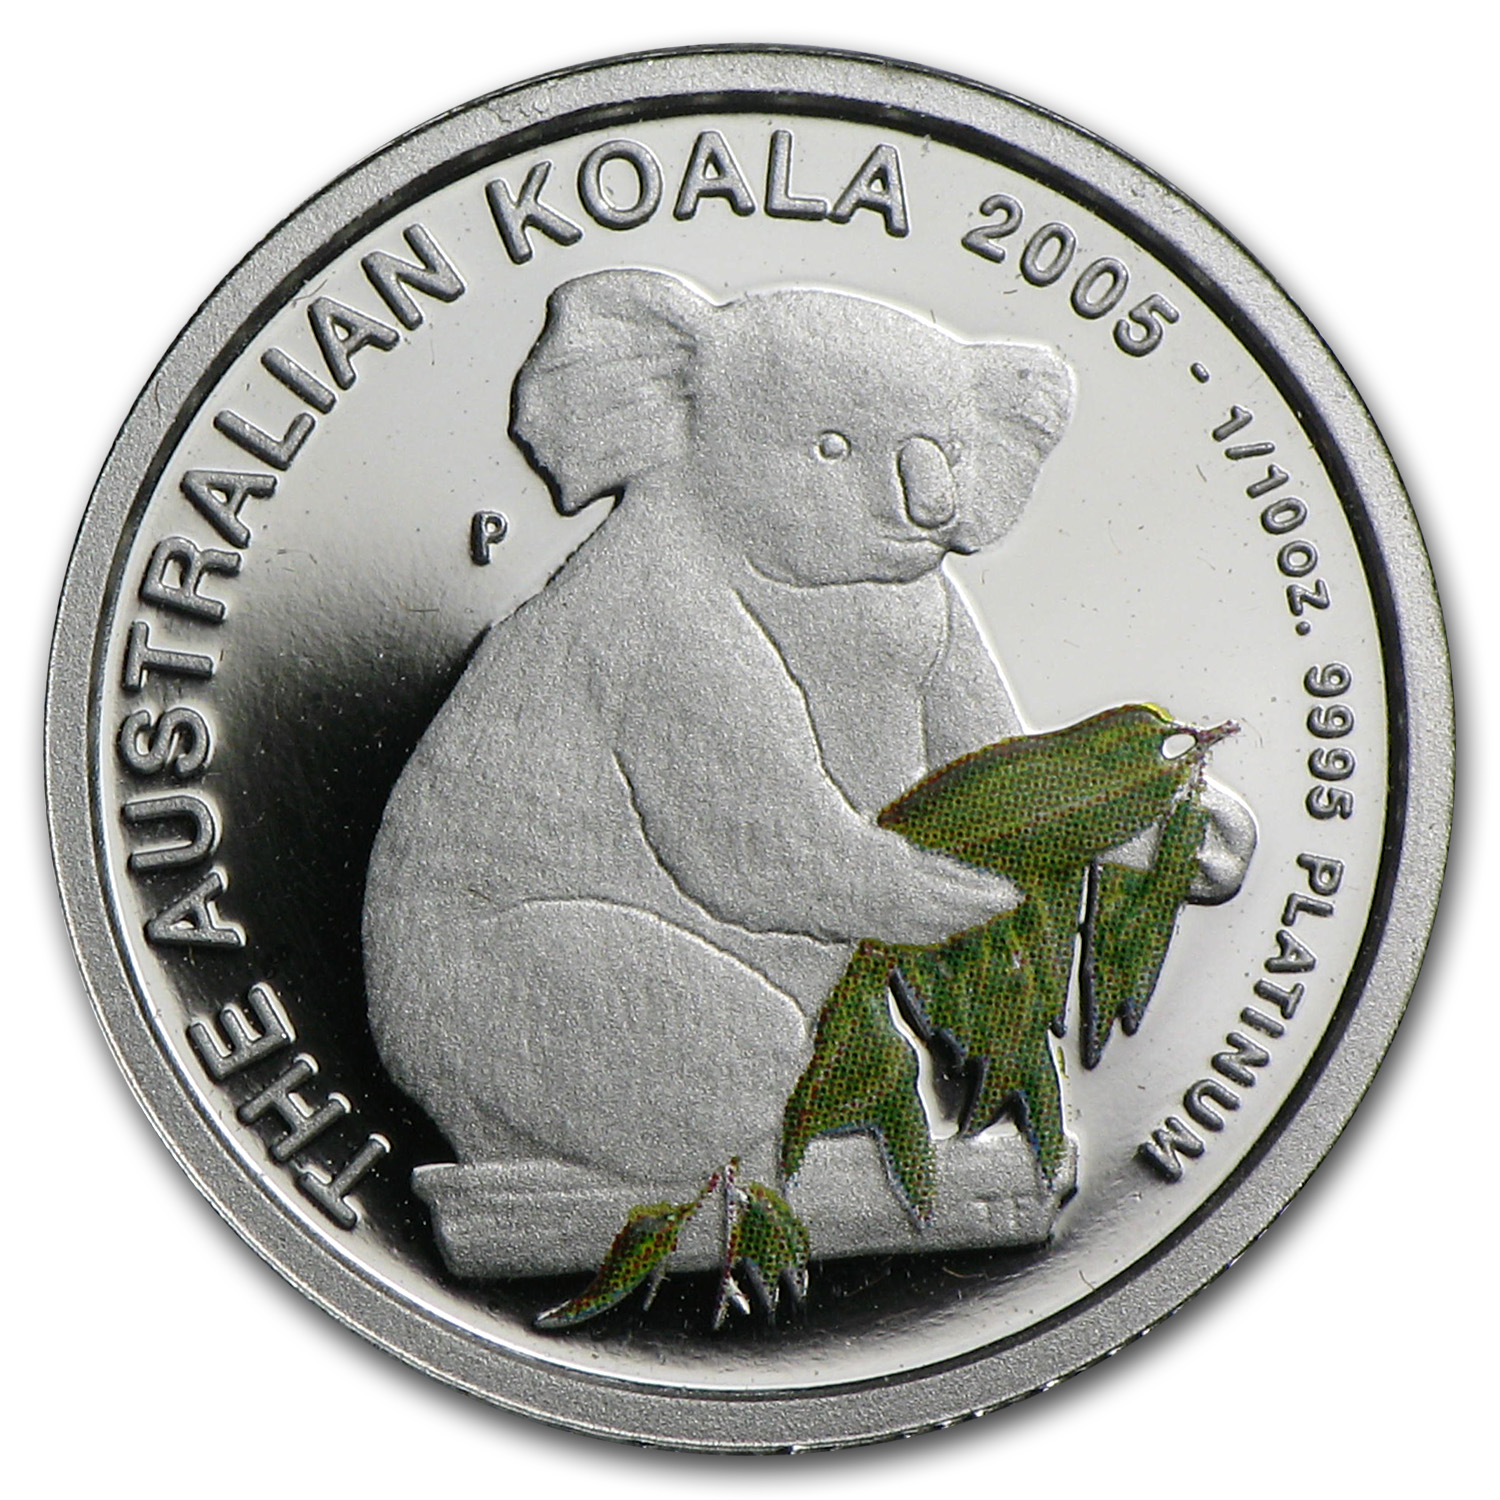 2005 Australia 1/10 oz Proof Platinum Koala